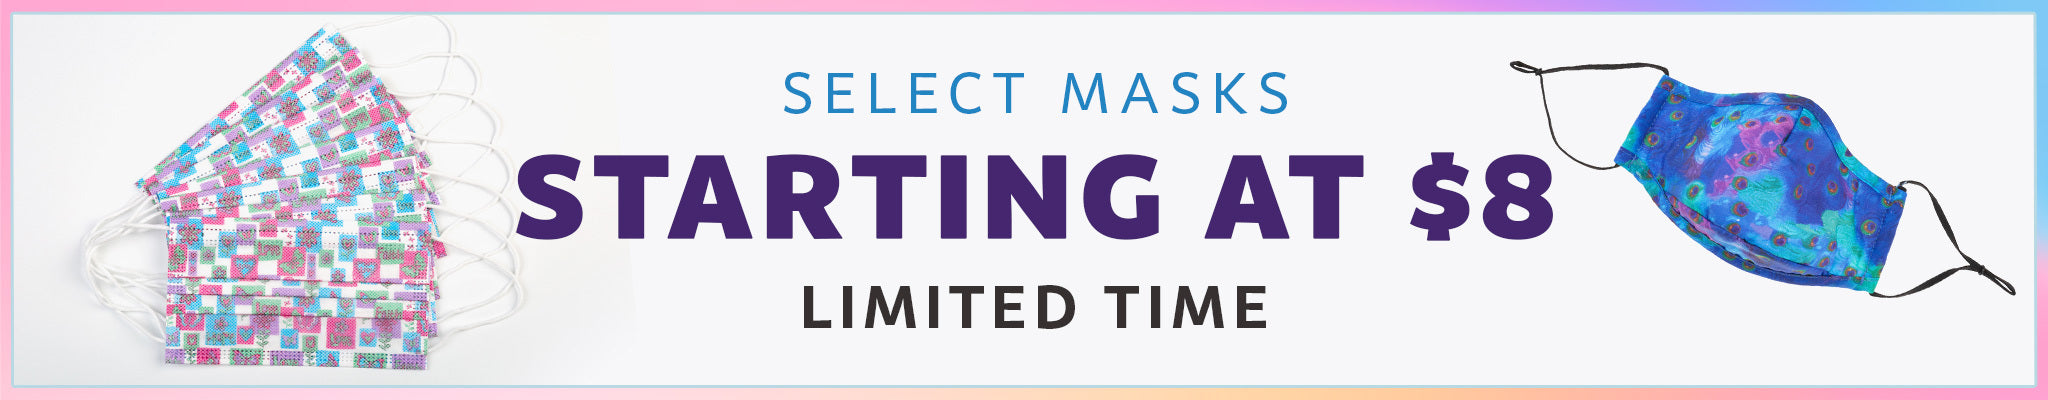 Limited Time | Select Masks Starting at $8